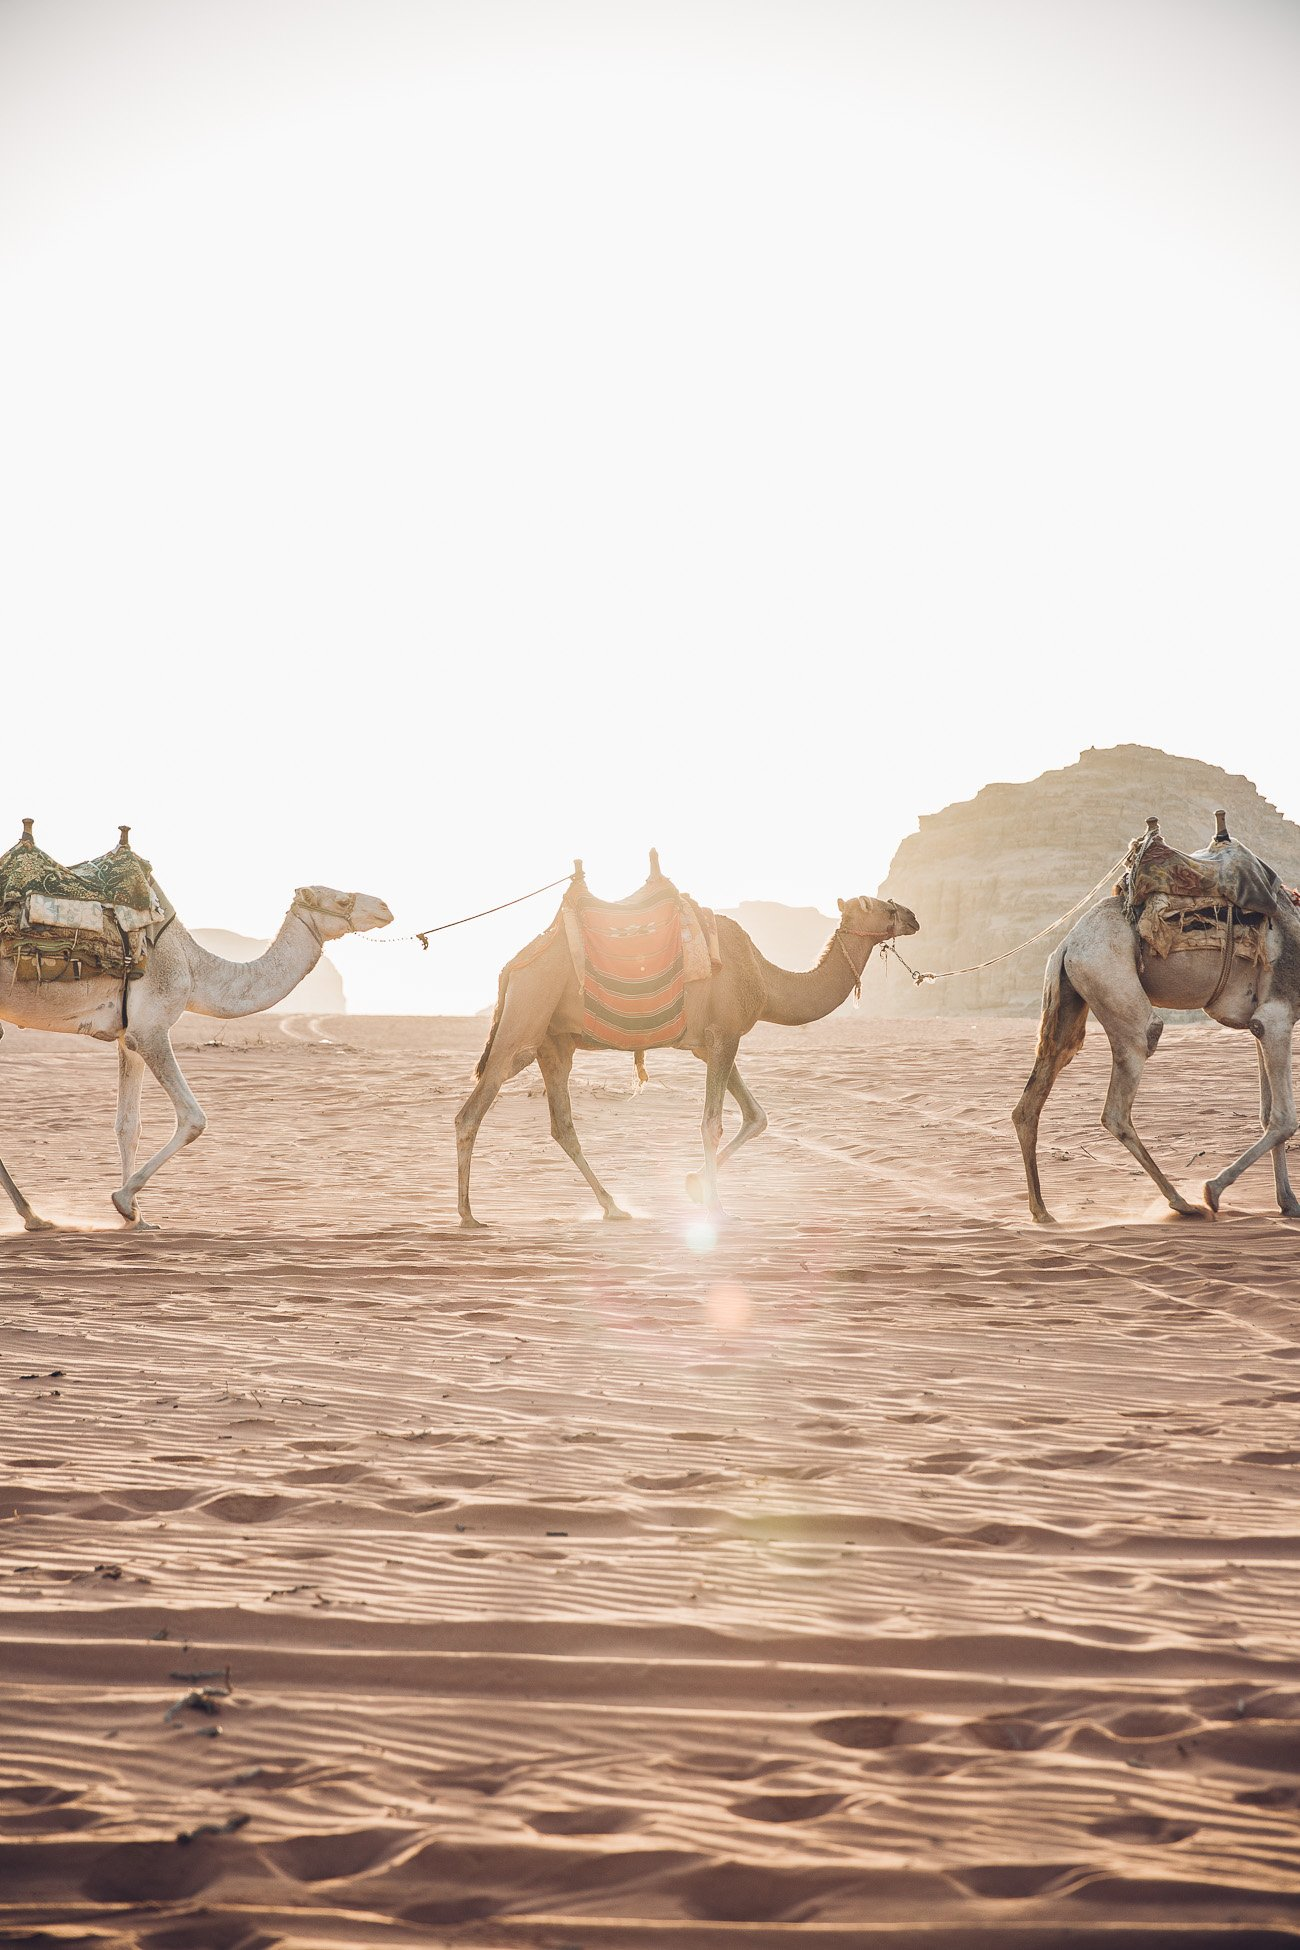 Camel ride in Wadi Rum at Sunrise